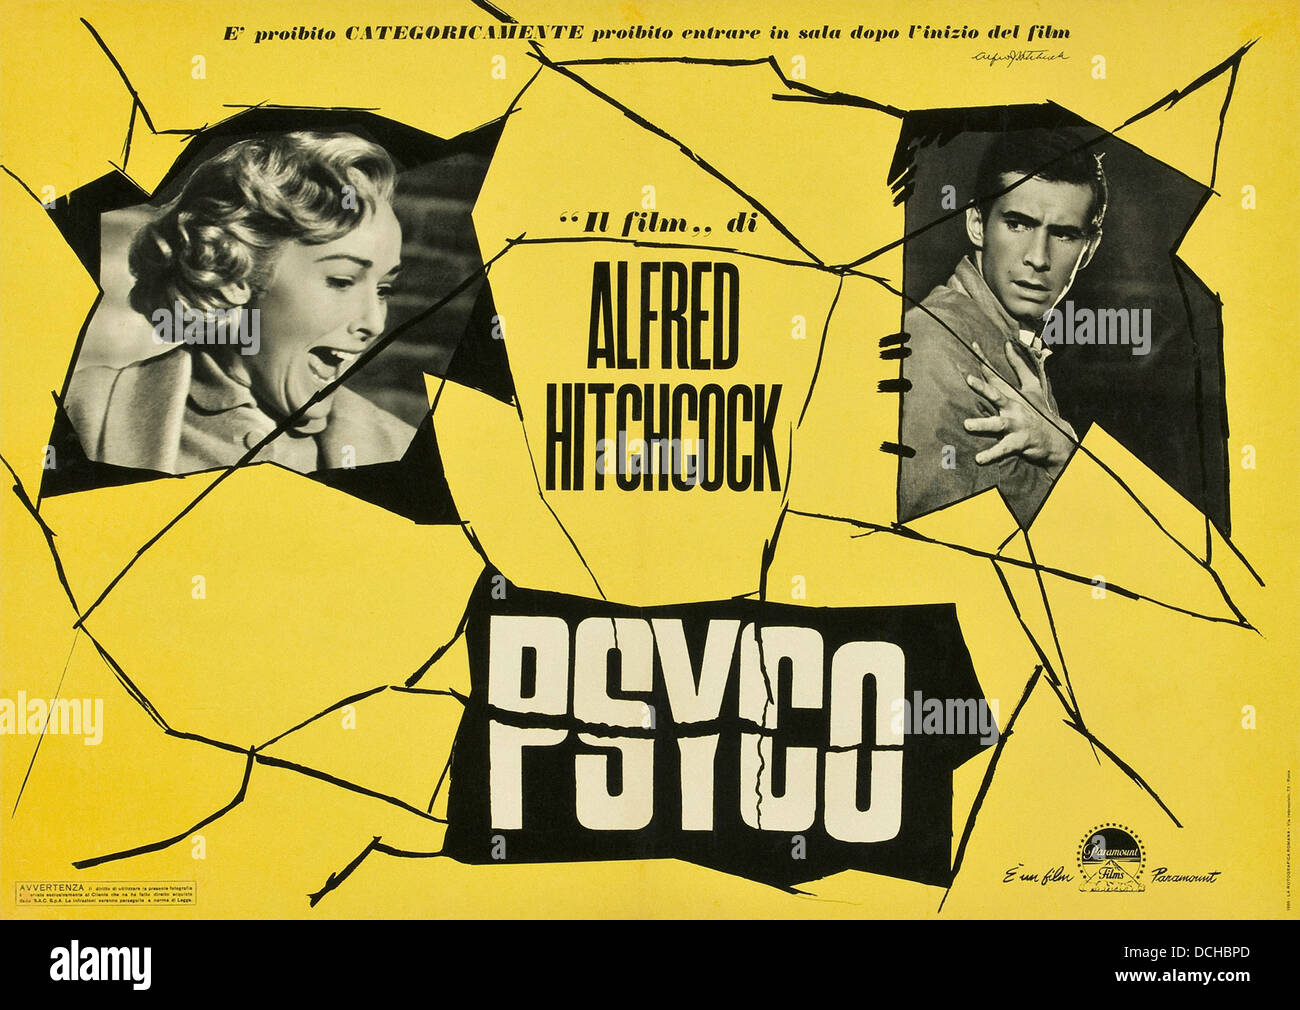 psycho by alfred hitchcock essay Hitchcock and the material politics of looking: laura mulvey, rear window, and psycho by tyler theus under the direction of dr angelo restivo.